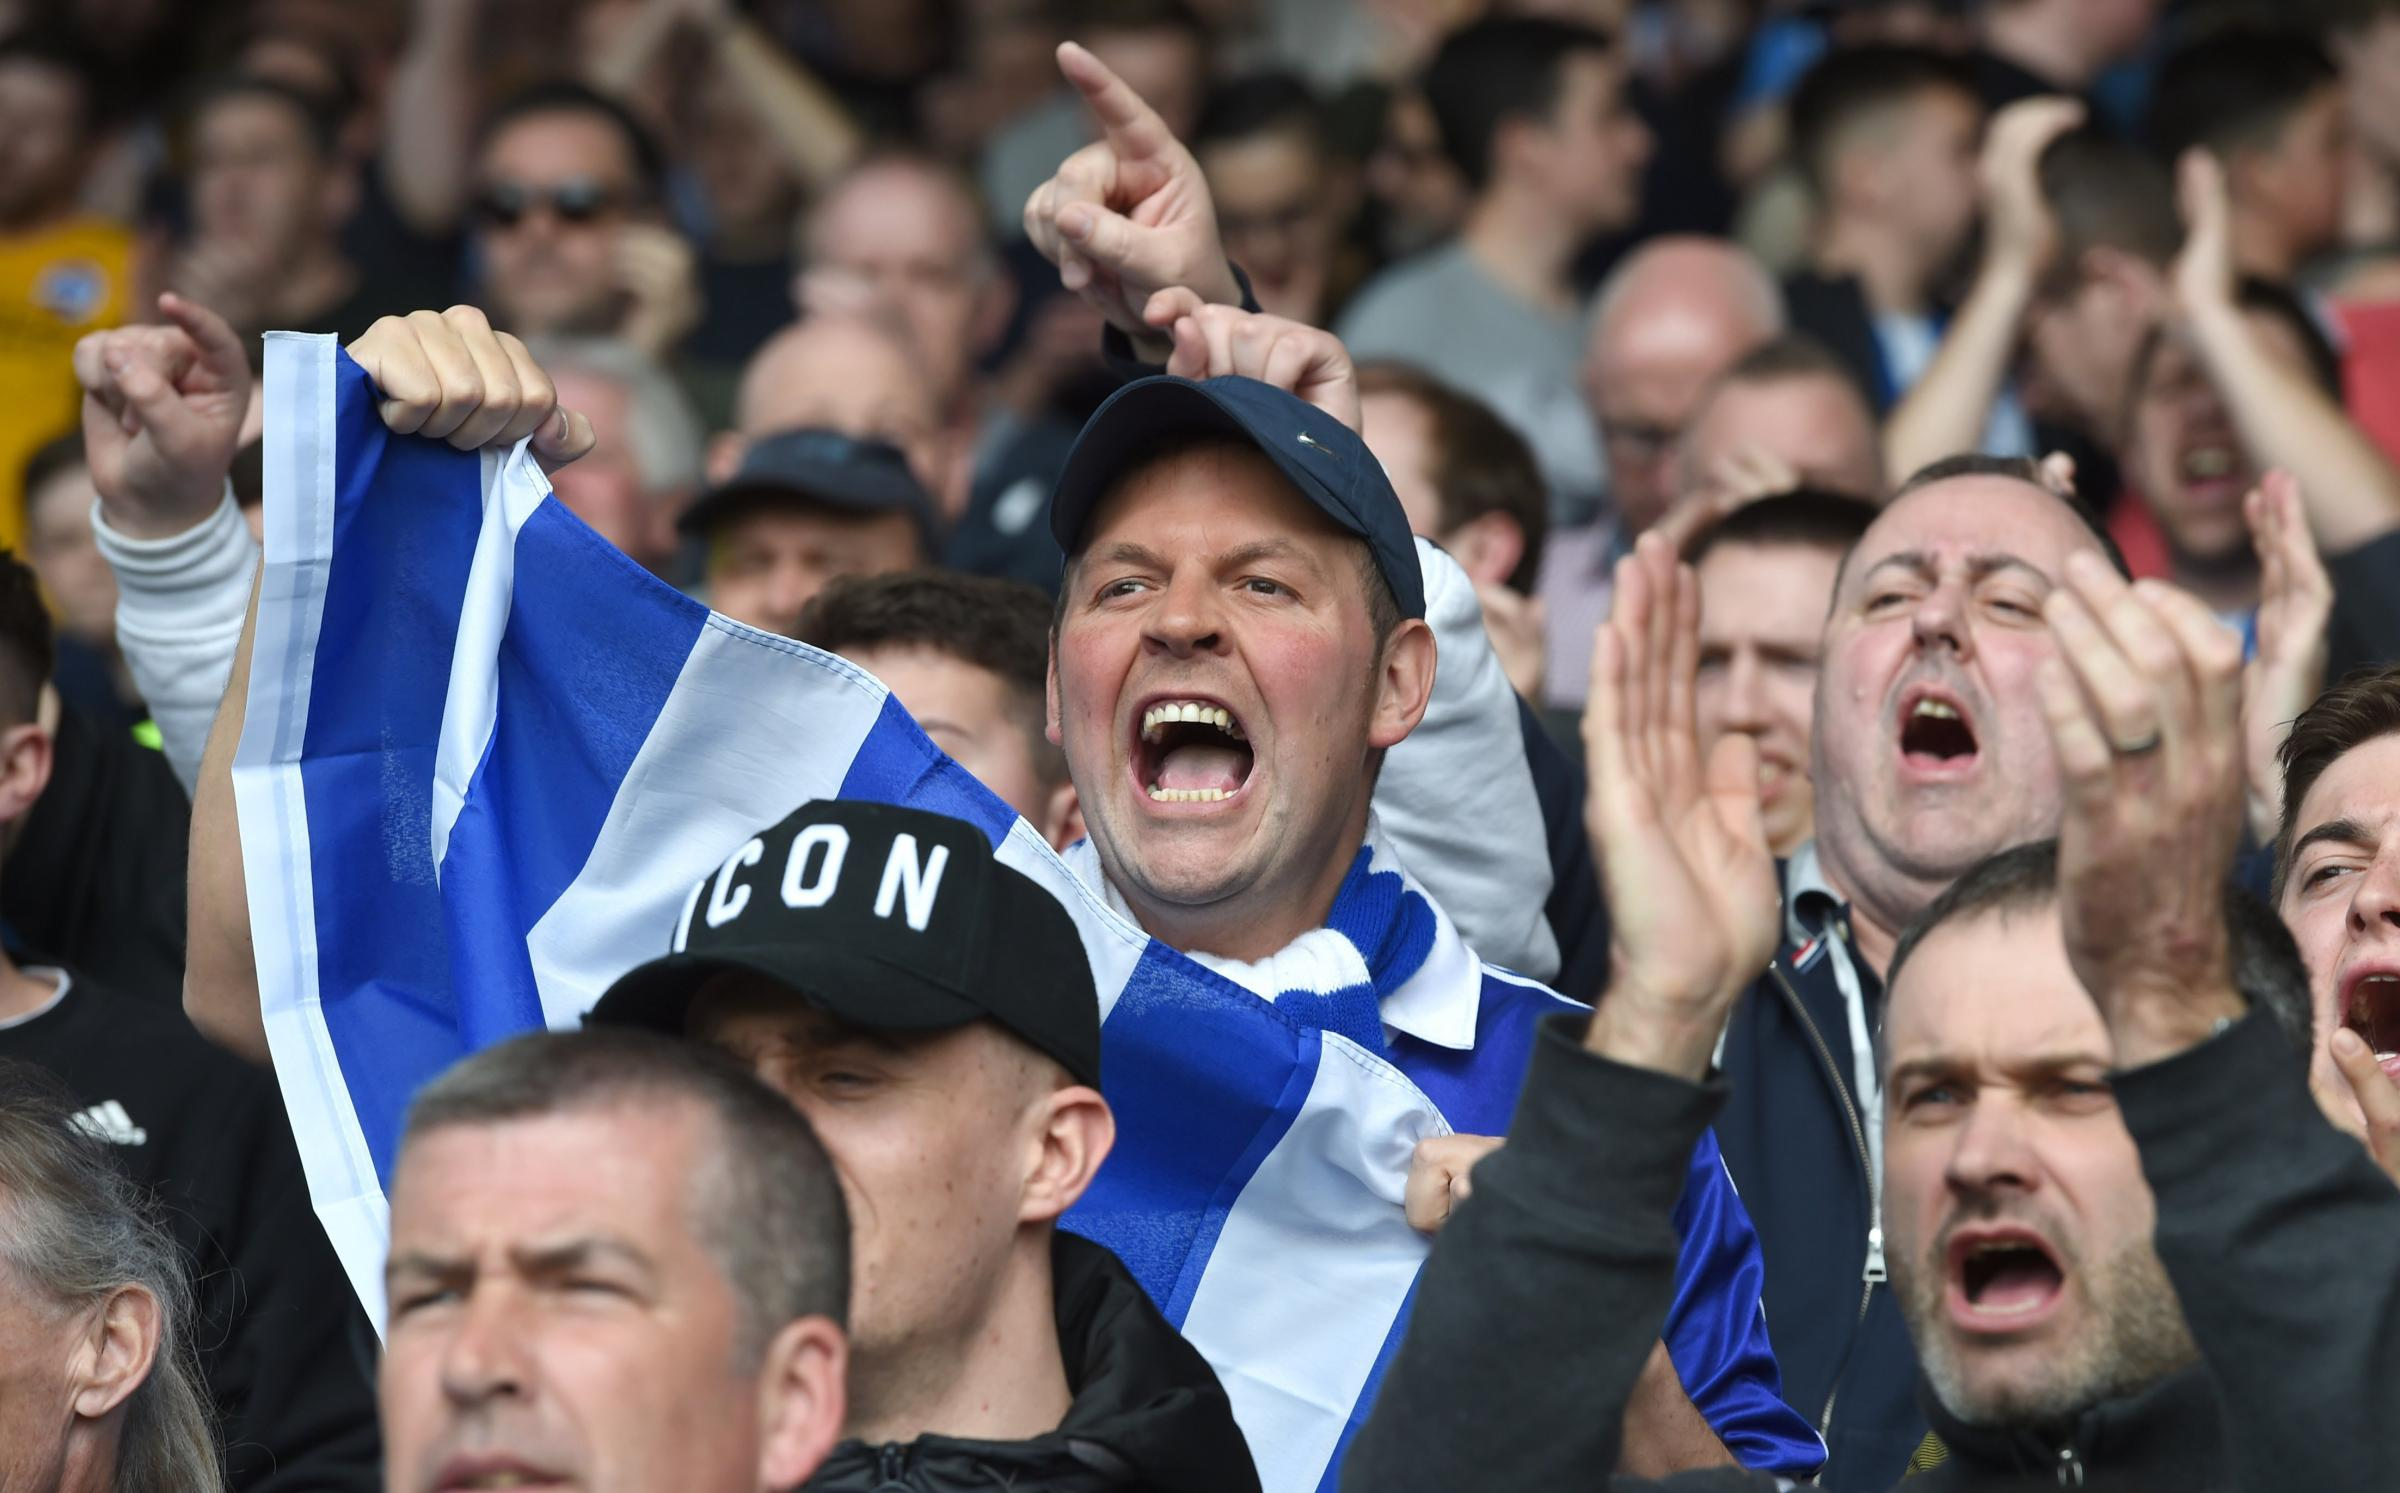 Brighton fans during the Premier League match against Crystal Palace and Brighton and Hove Albion at Selhurst Park. Photograph by Simon Dack.